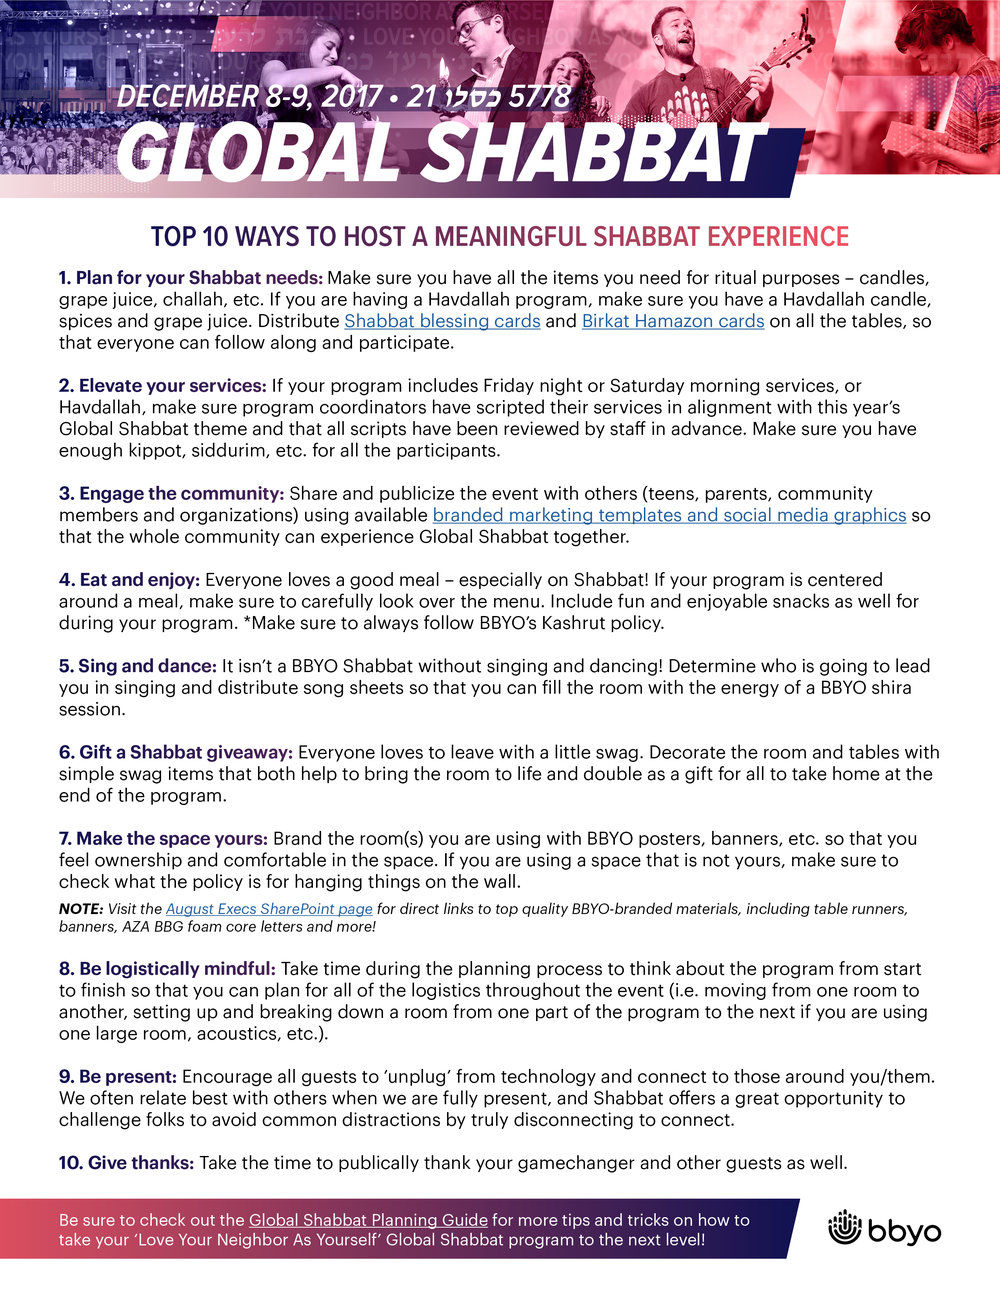 The Top 10 Ways to Host a Meaningful Shabbat Experience Check out this quick tip list for making your Global Shabbat as meaningful as possible.